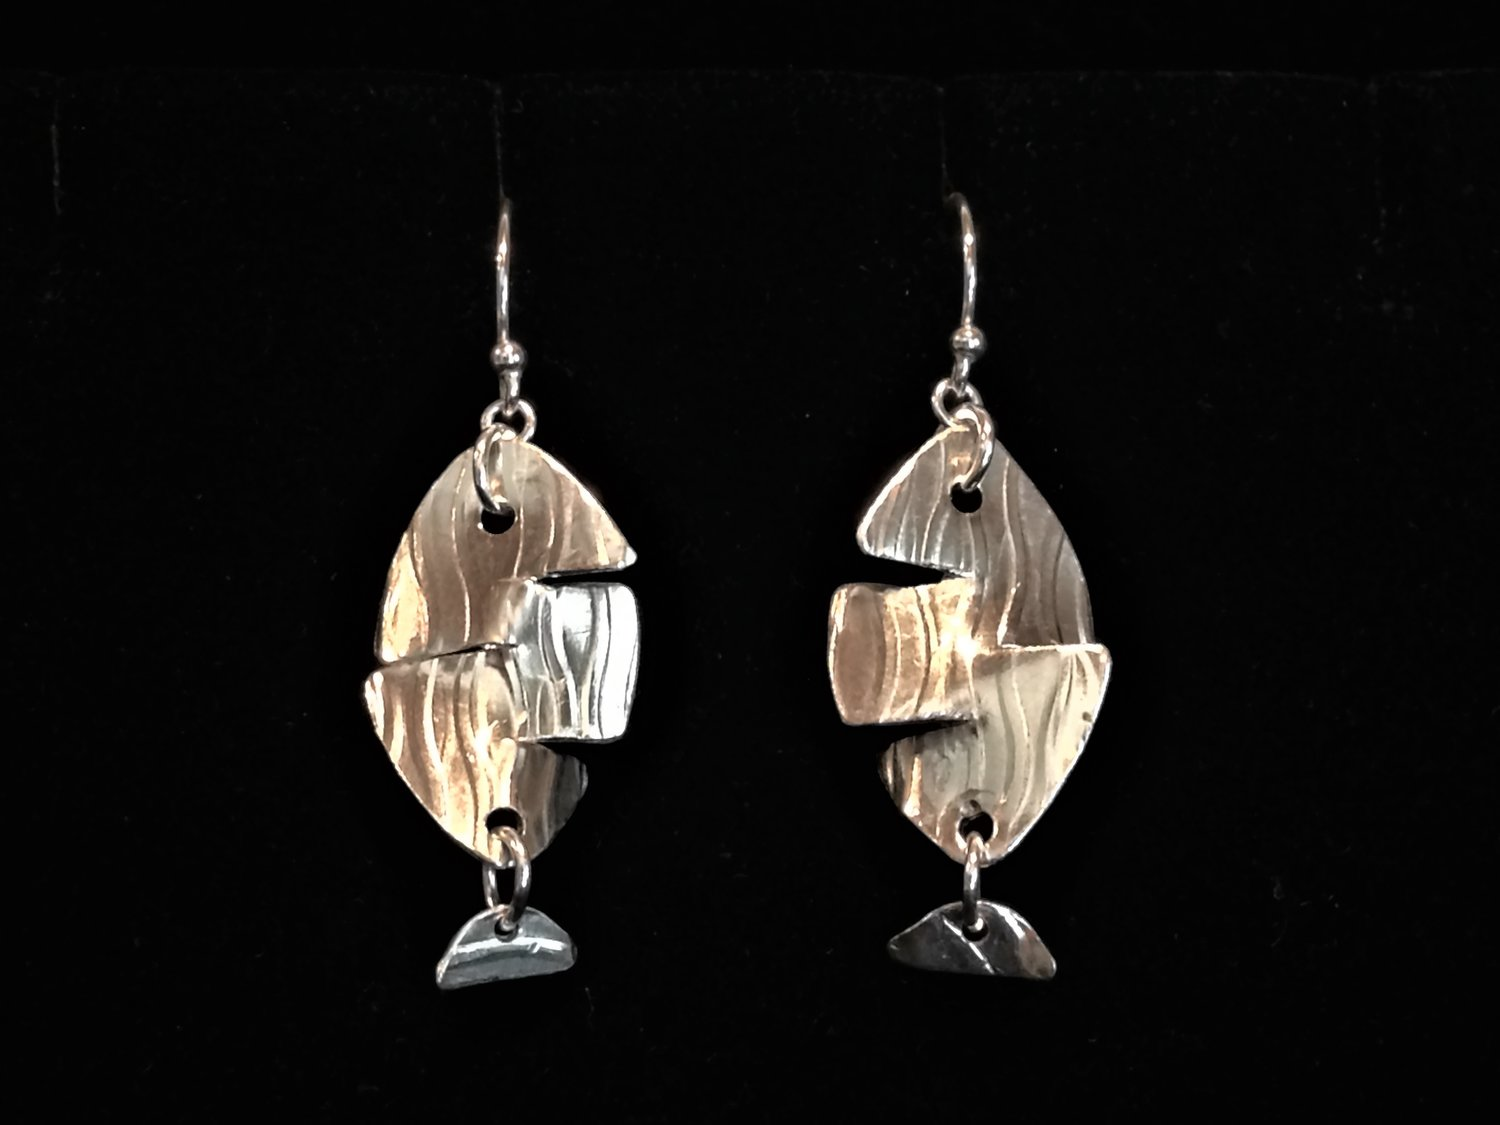 For the Fishing Enthusiast - Wiggling Fish Earrings